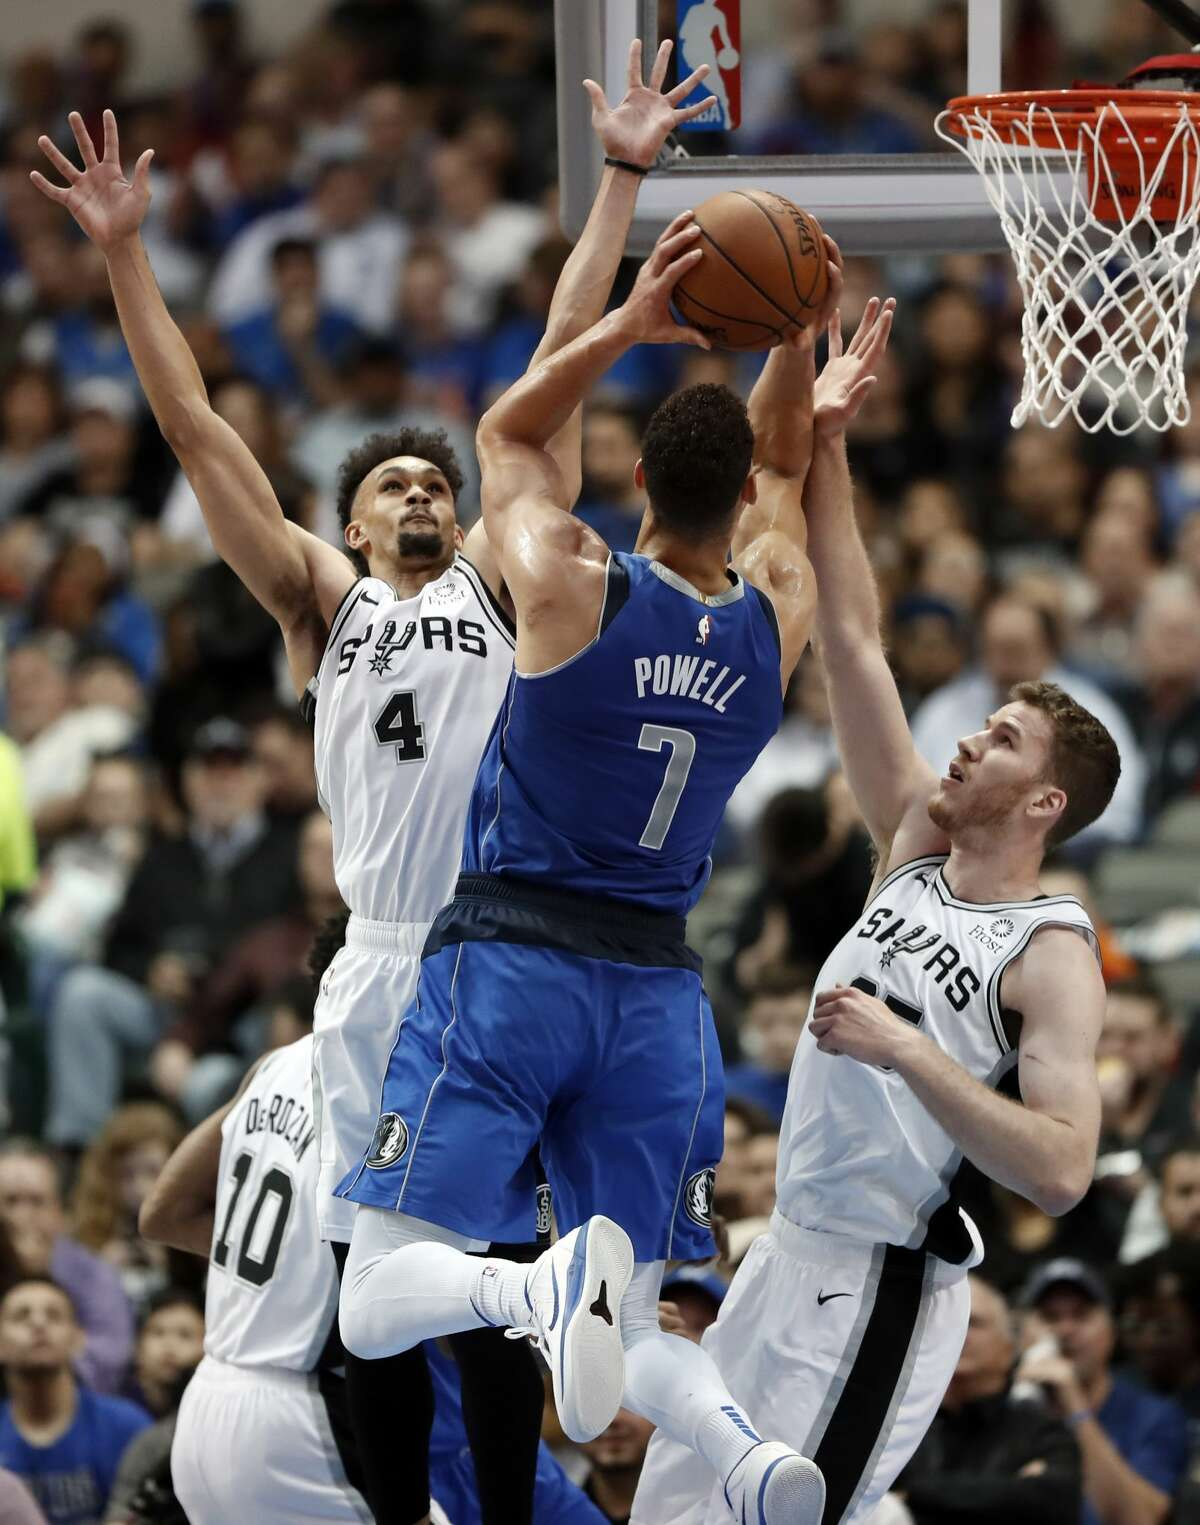 Dallas Mavericks forward Dwight Powell (7) goes up for a shot as San Antonio Spurs' DeMar DeRozan (10), Derrick White (4) and Jakob Poeltl, right, defend during the first half of an NBA basketball game in Dallas, Tuesday, March 12, 2019. (AP Photo/Tony Gutierrez)